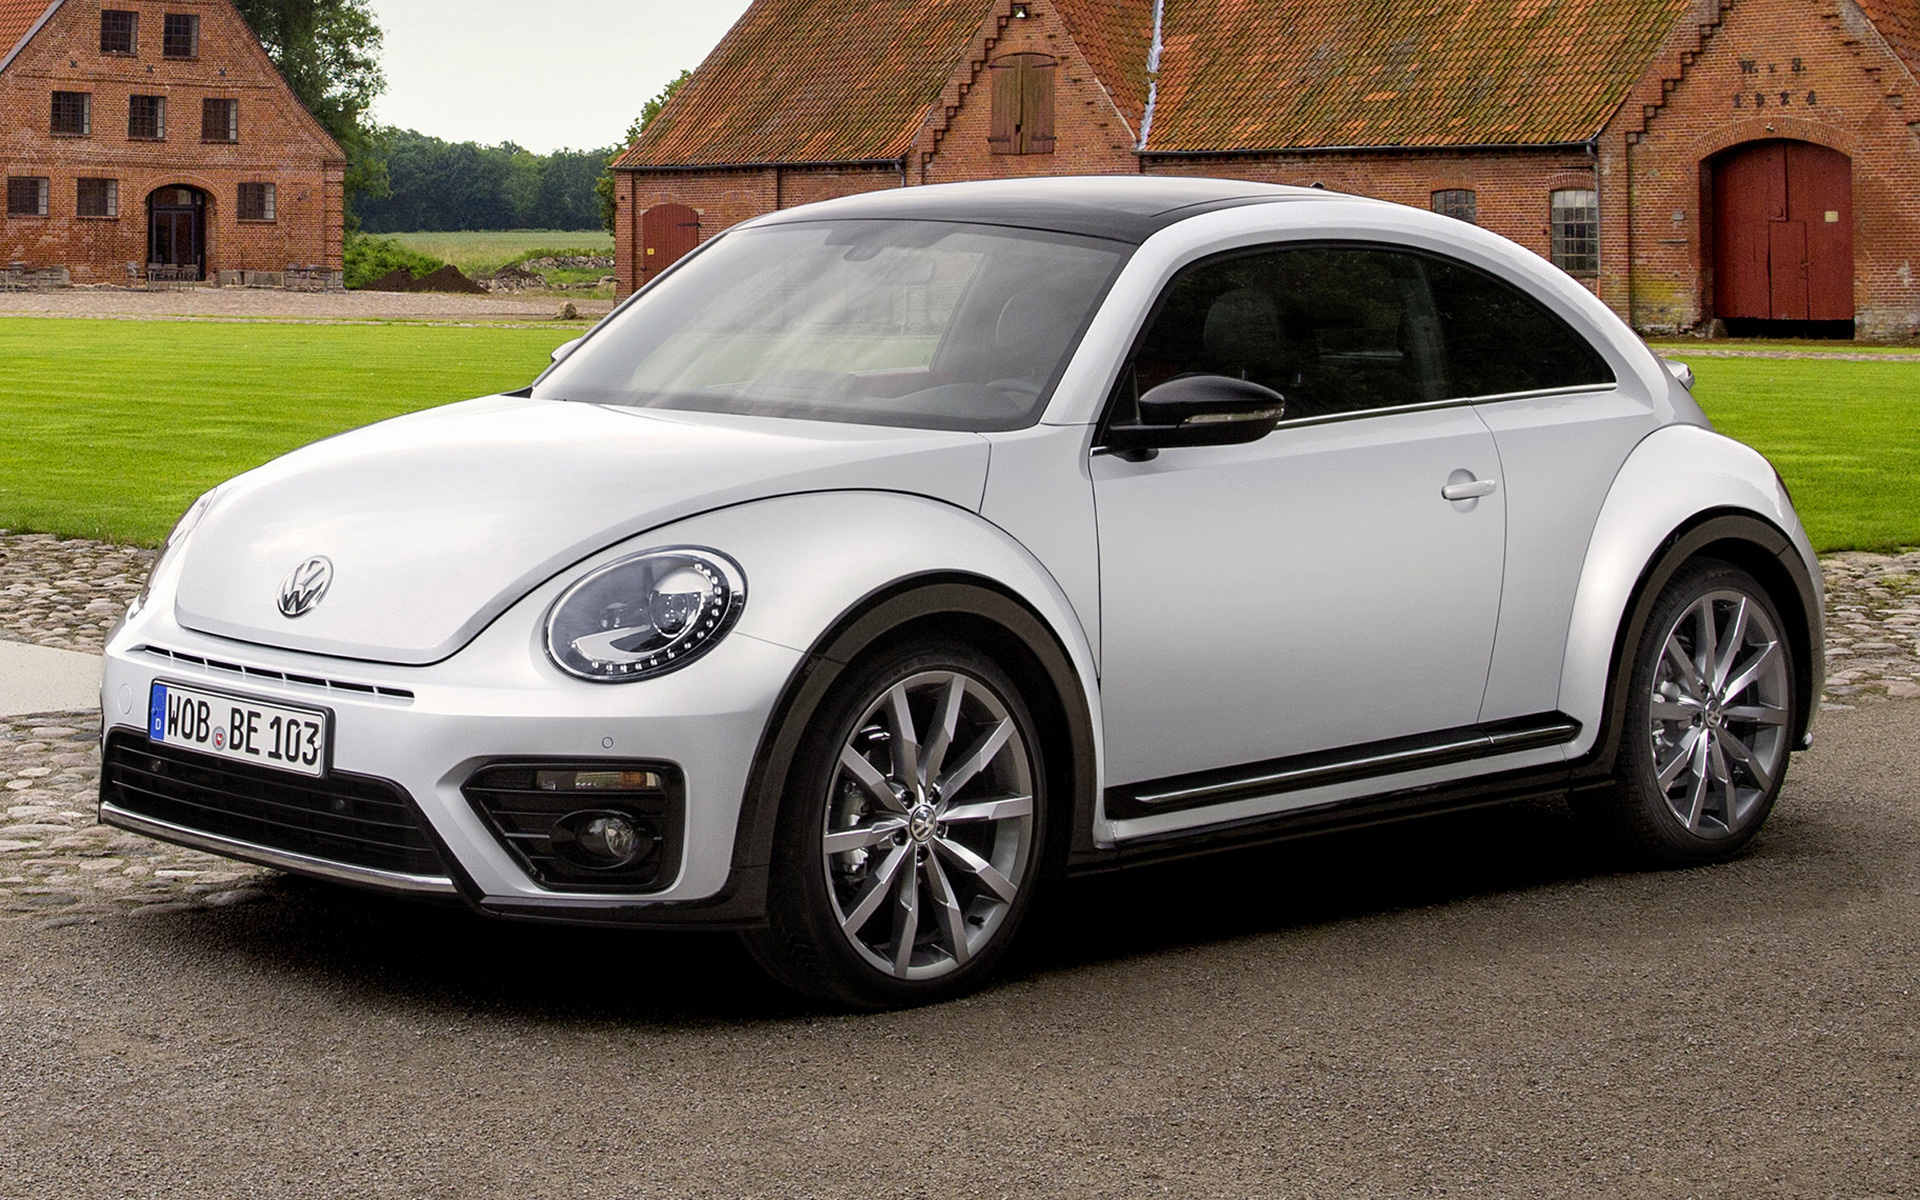 Volkswagen Beetle R Line Car Wallpaper on Vw Beetle Dune Concept